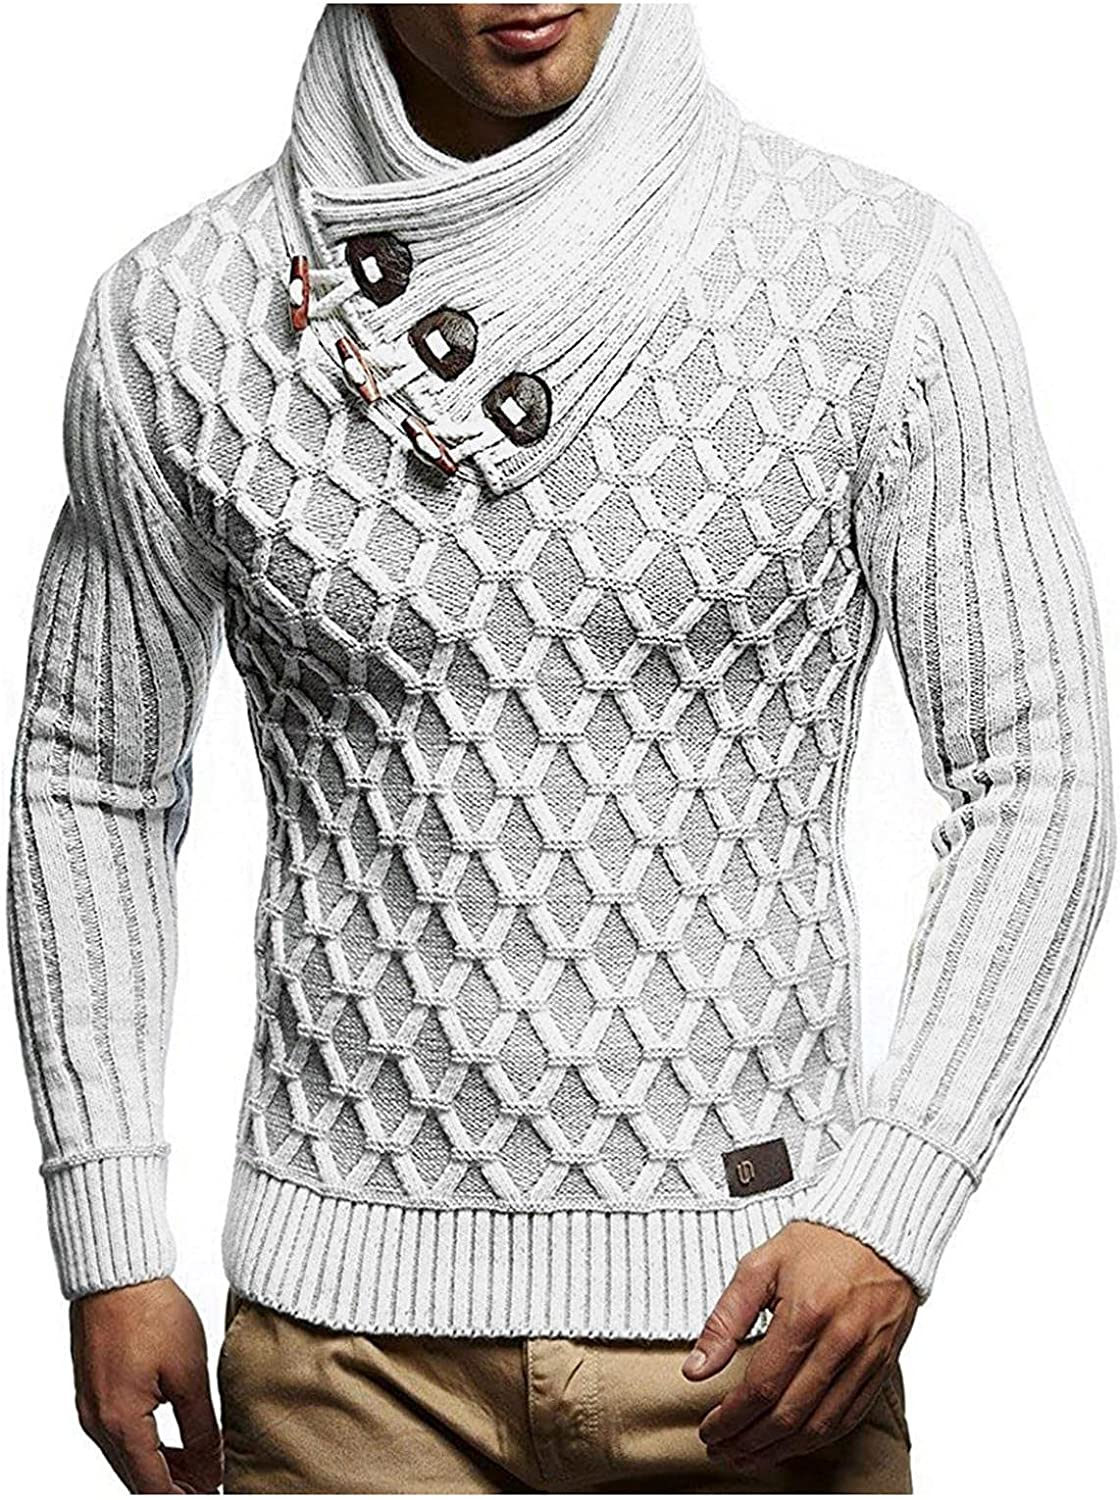 Men's Cable Knit Cardigan Sweater Long Sleeve Solid Color Plaid Turtleneck Pullover Tops Sweater Winter Fall Coat Blouse